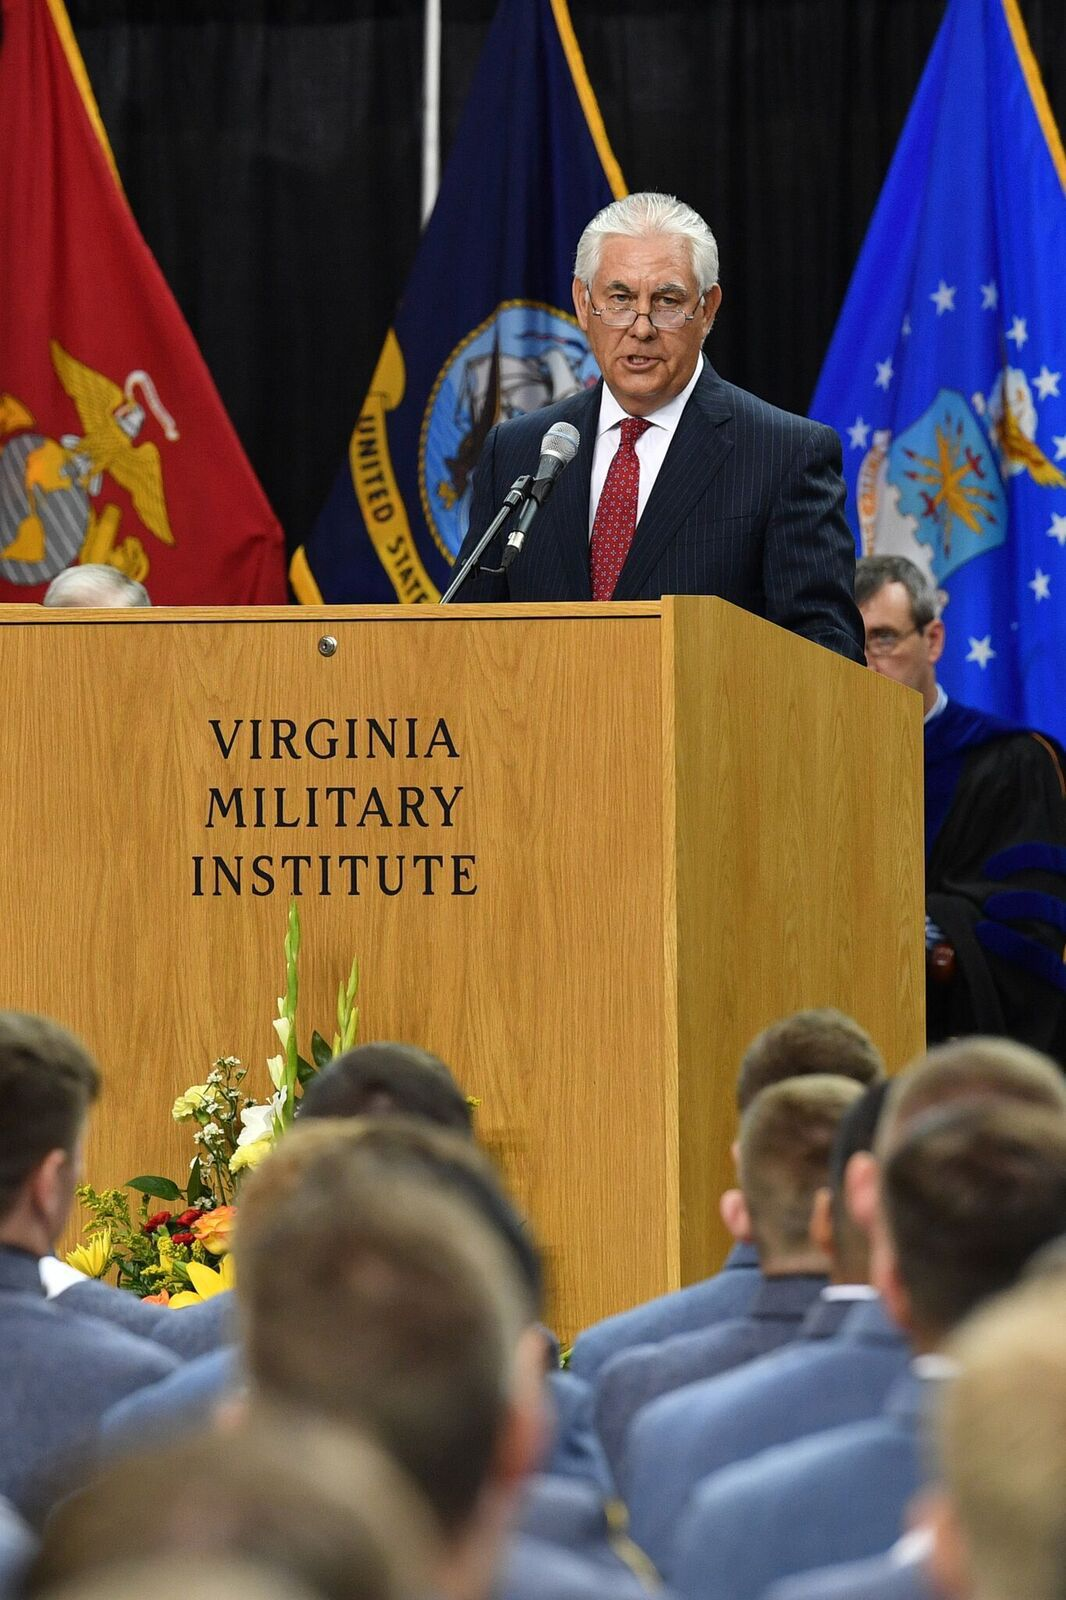 Vmi Calendar May : Tillerson in wake of clashes with trump warns vmi